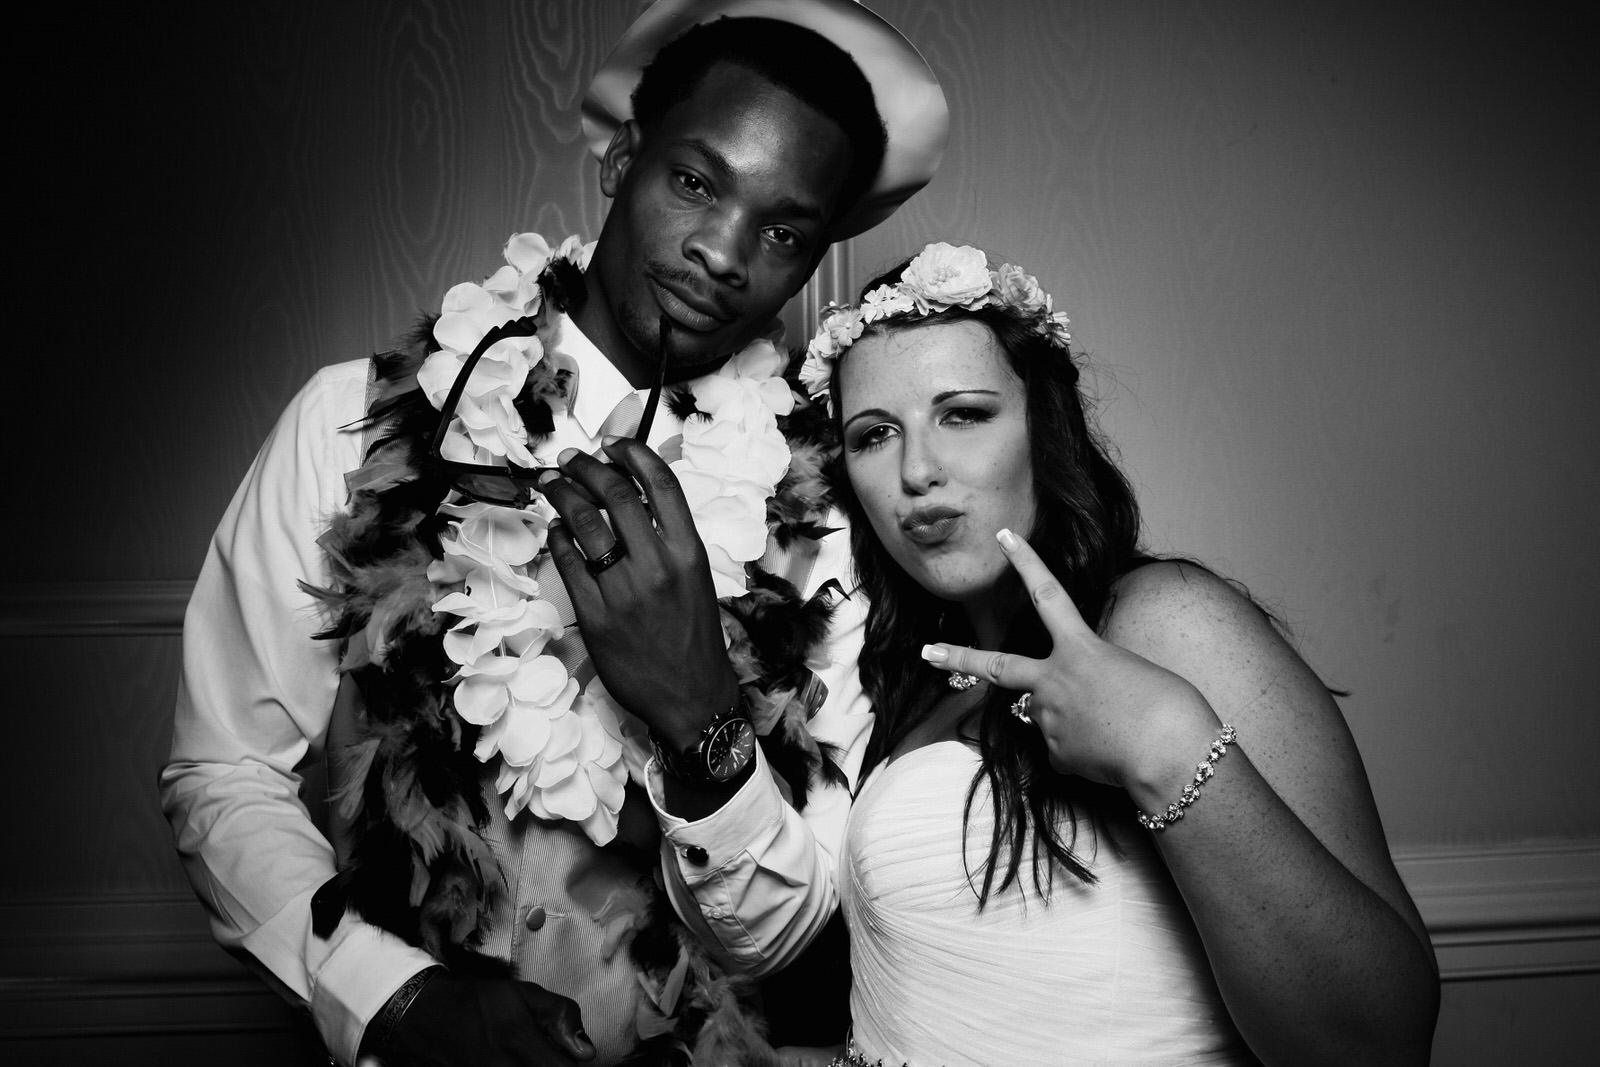 Ashley-Tyrone-Wedding-Photo-Booth-Presidential_Norristown-Wedding-11.jpg